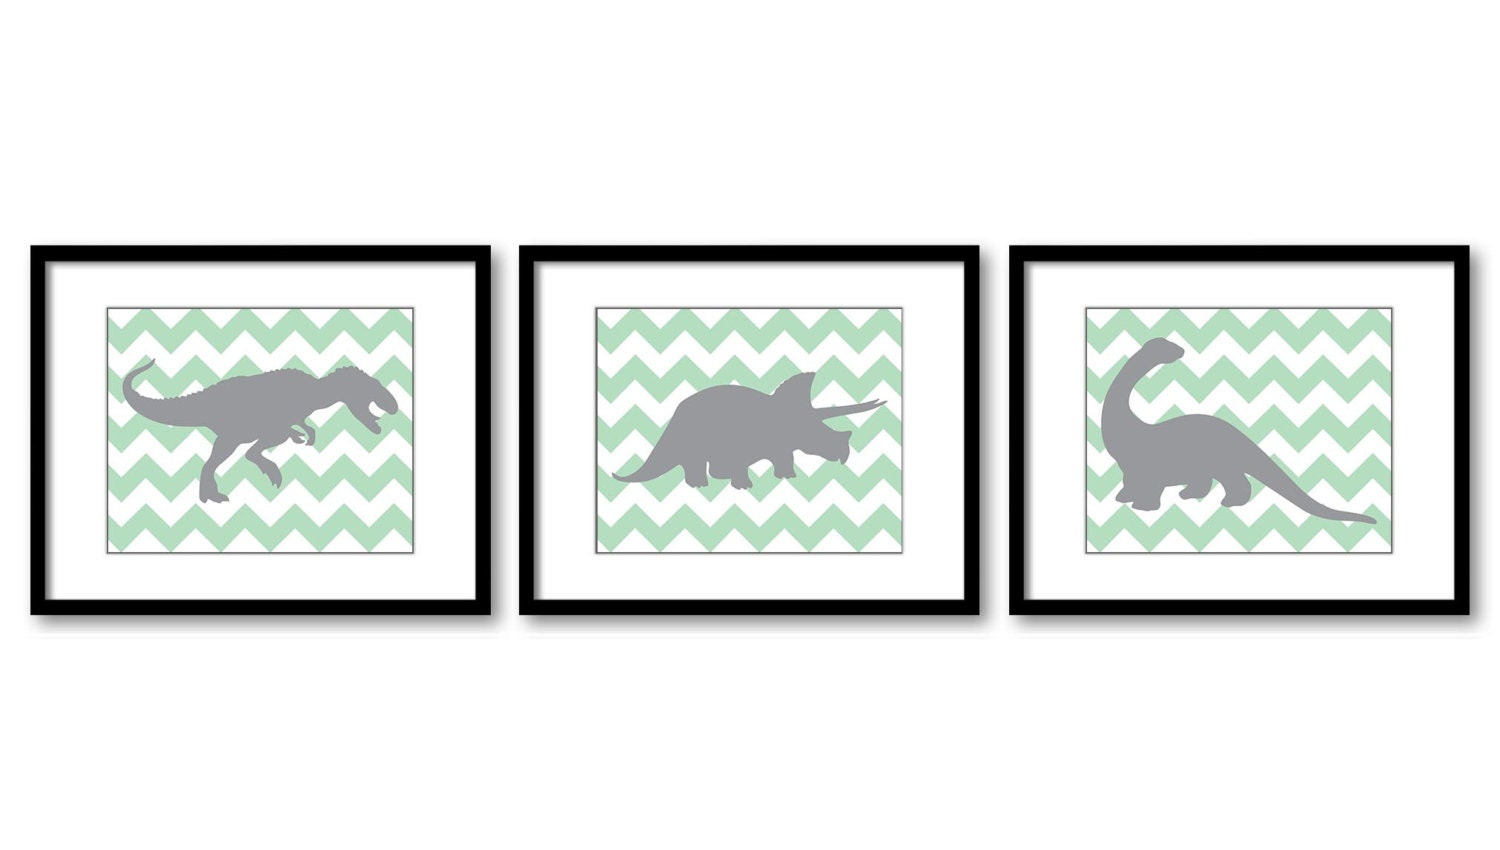 Dinosaur Nursery Art Dinosaurs Print Set of 3 Prints Mint Green Grey Chevron Tyrannosaurus Rex Trice